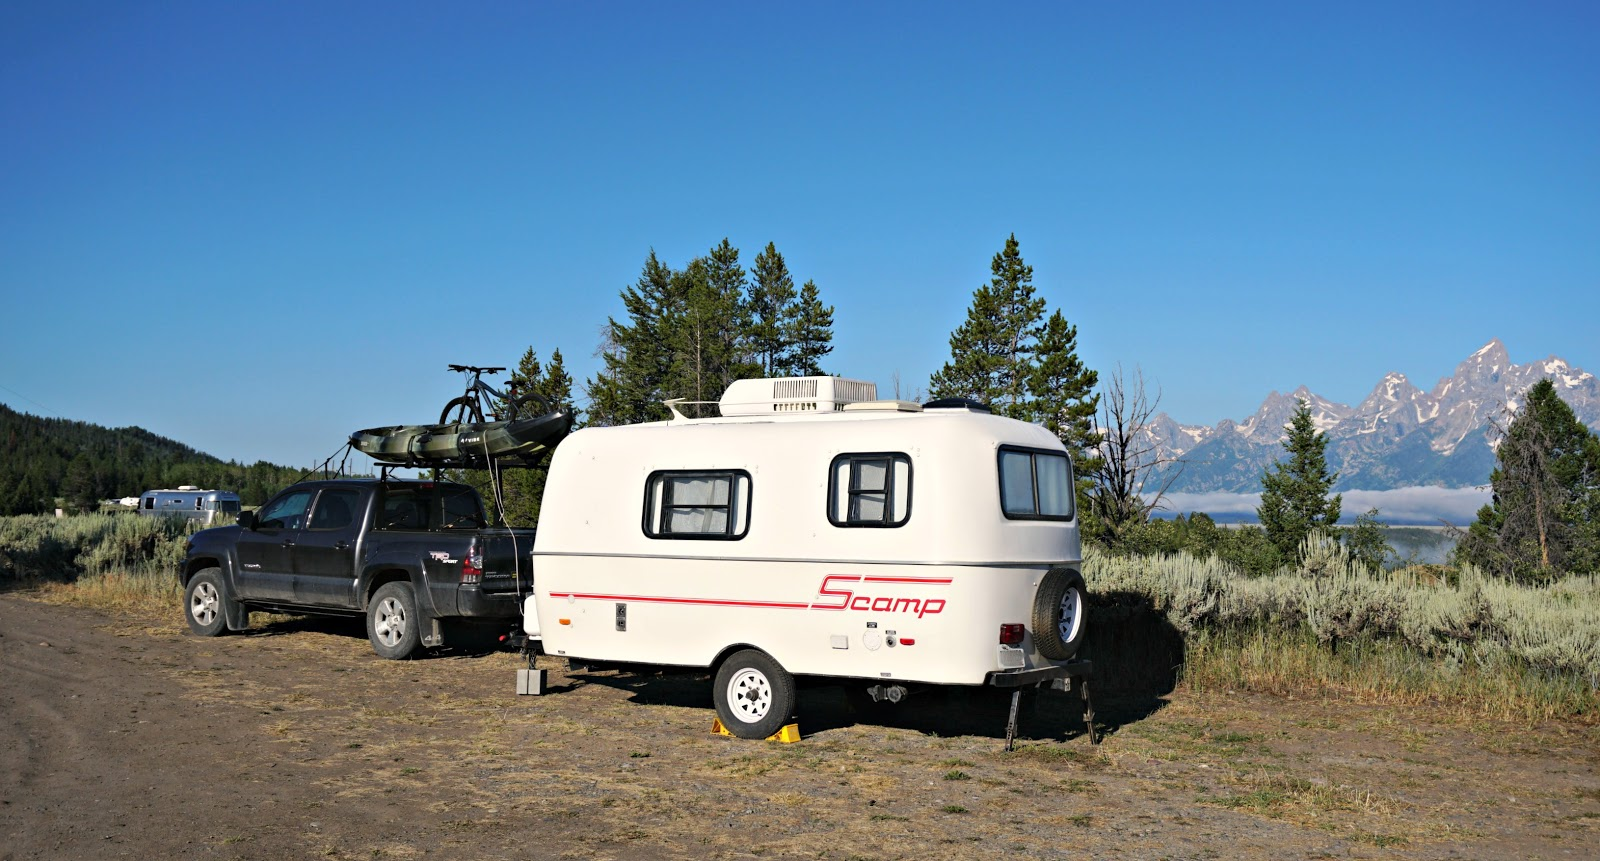 Boondocking in the Tetons